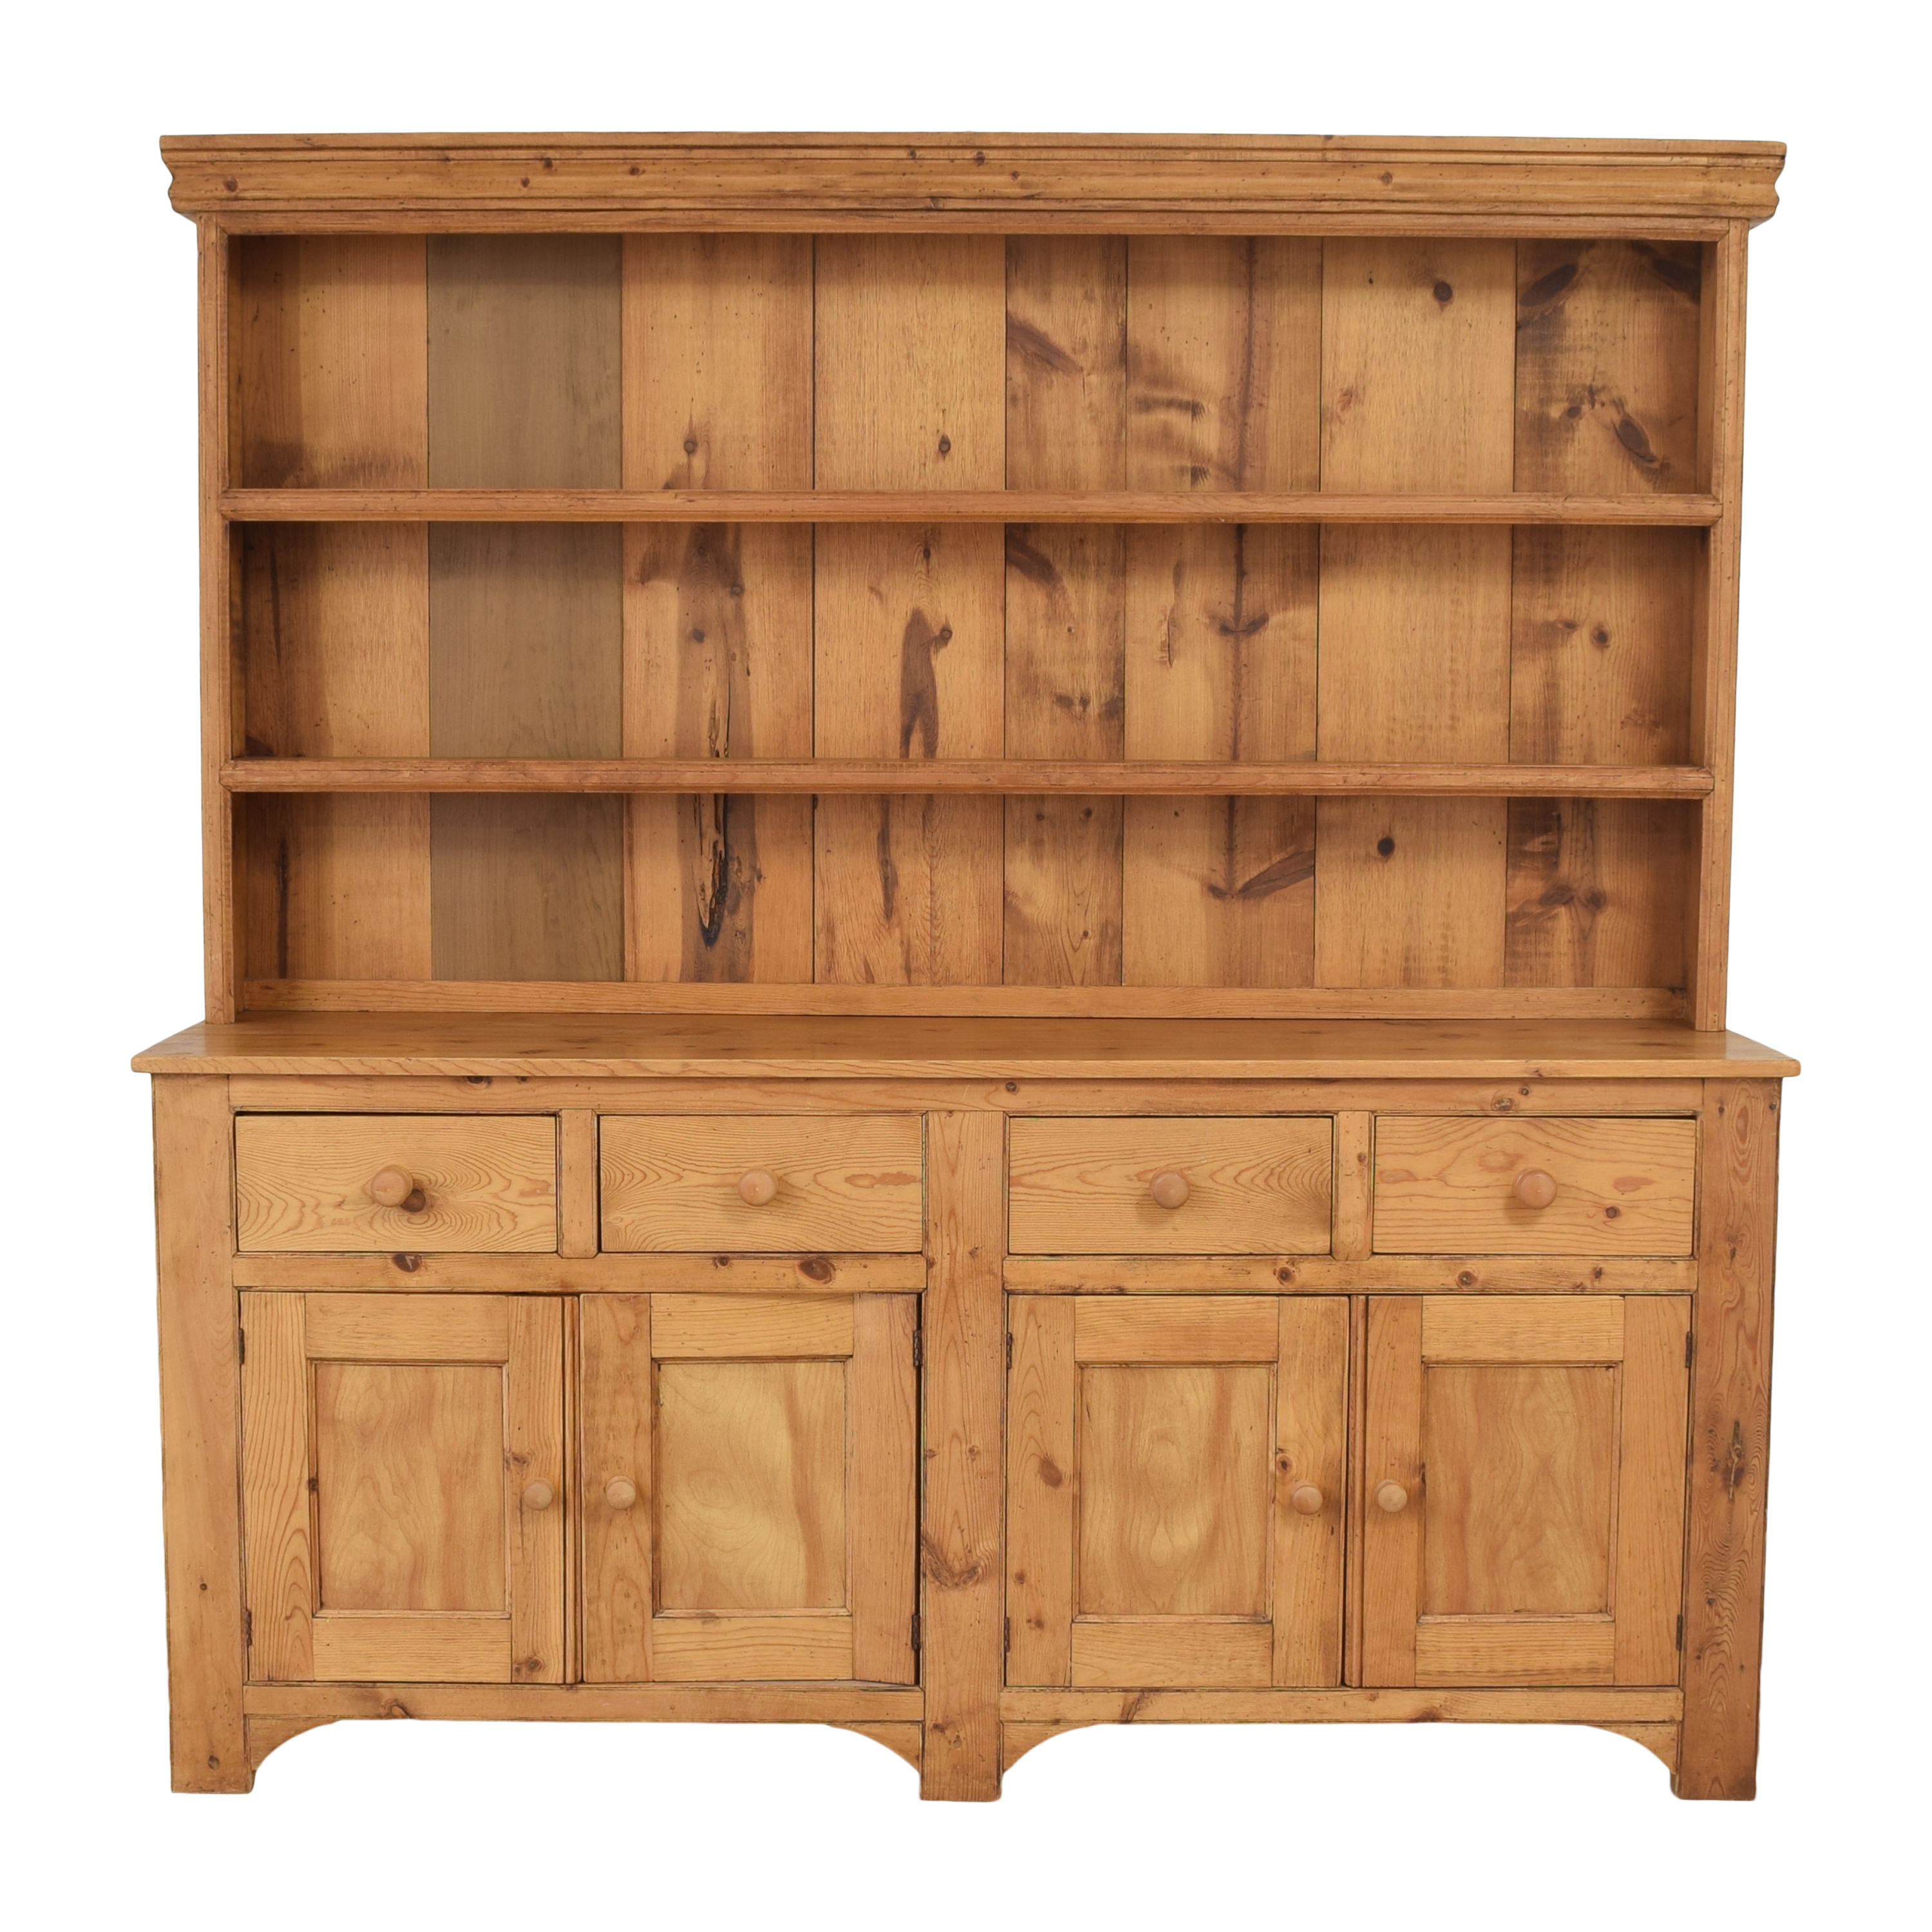 Breakfront with Hutch Cabinets & Sideboards